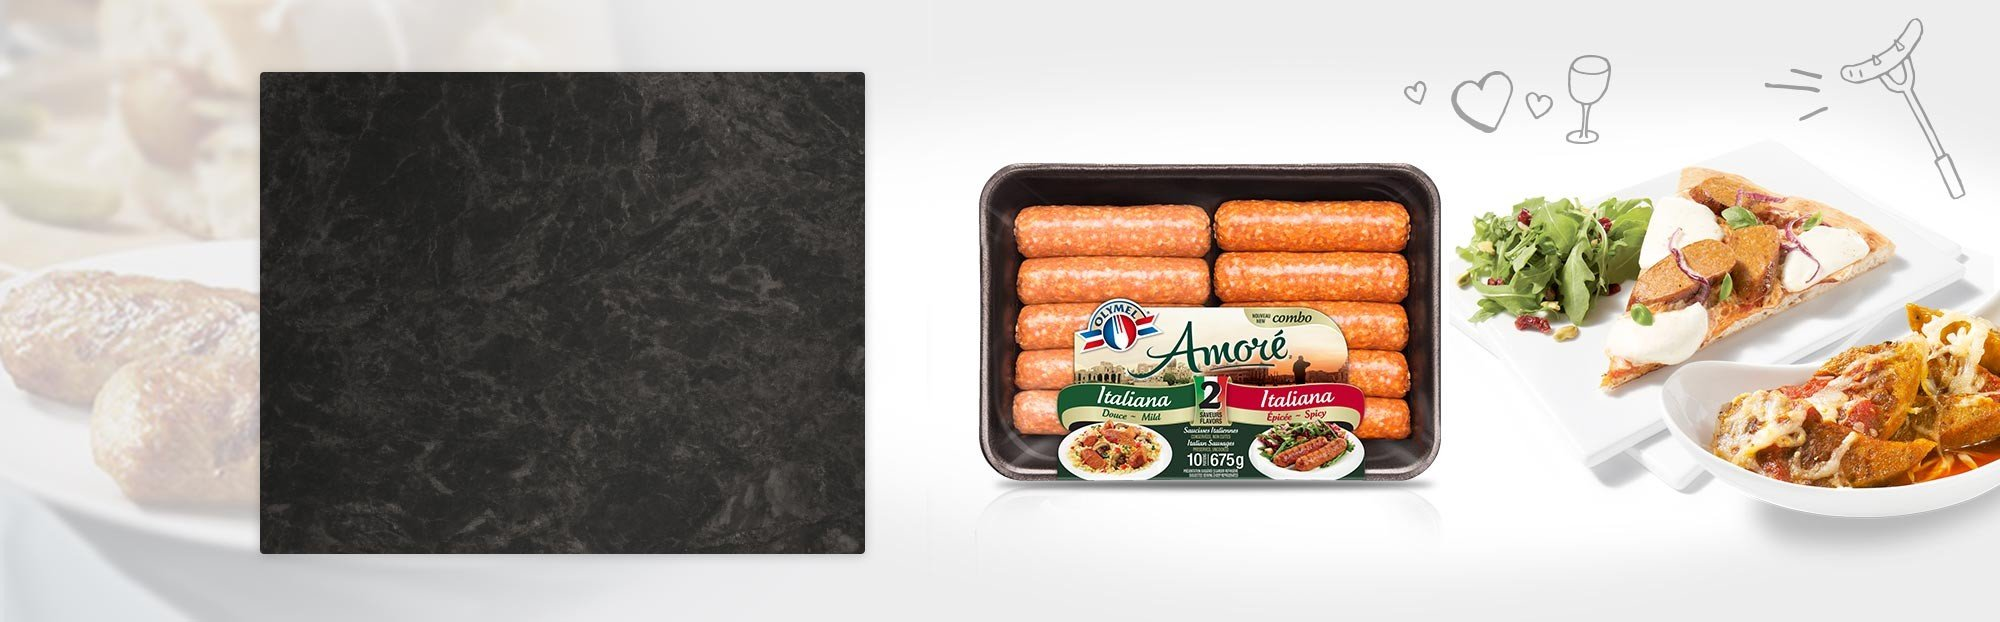 Combo Amoré Sausages Mild Italian and Spicy Italian